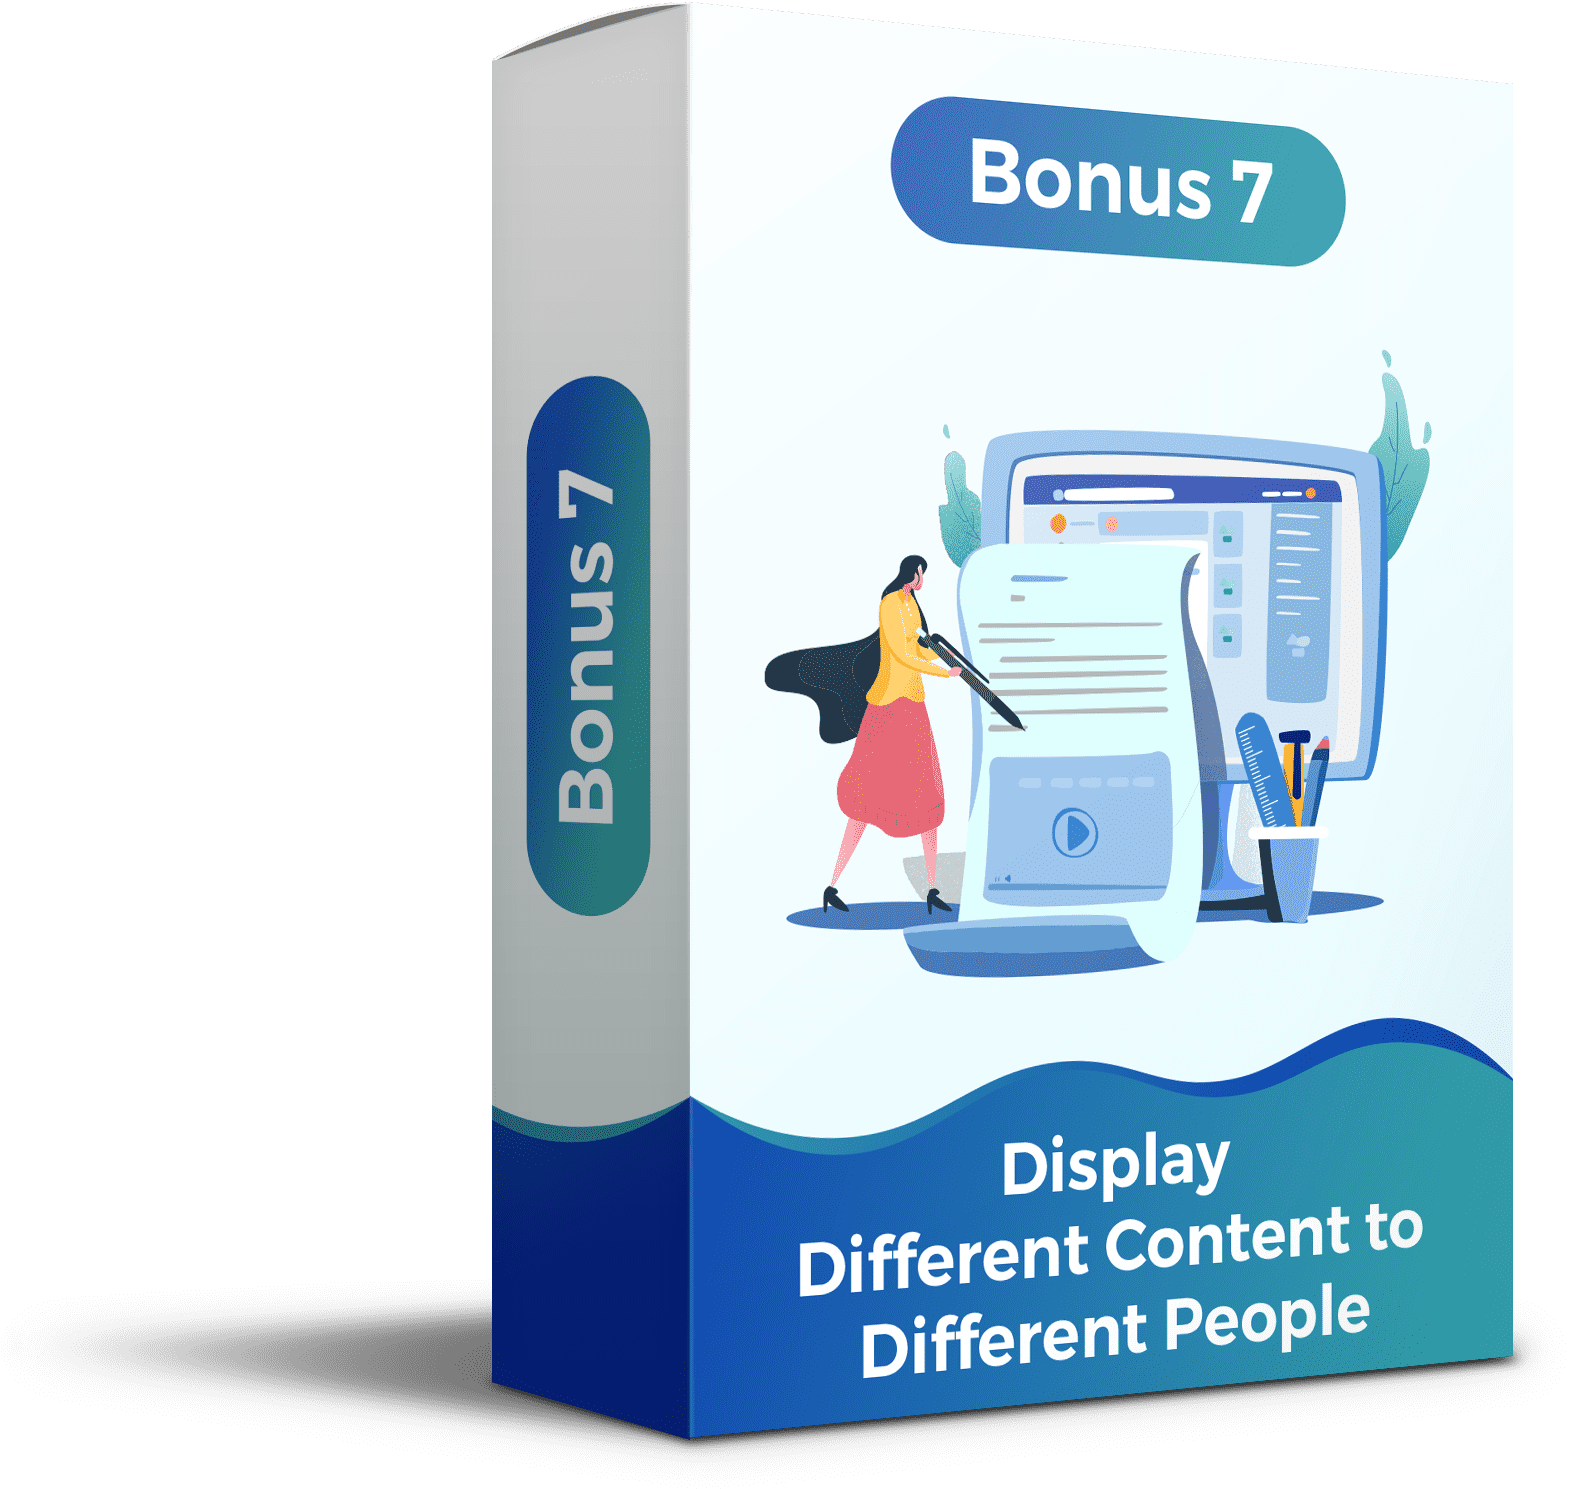 Display Different Content To Different People